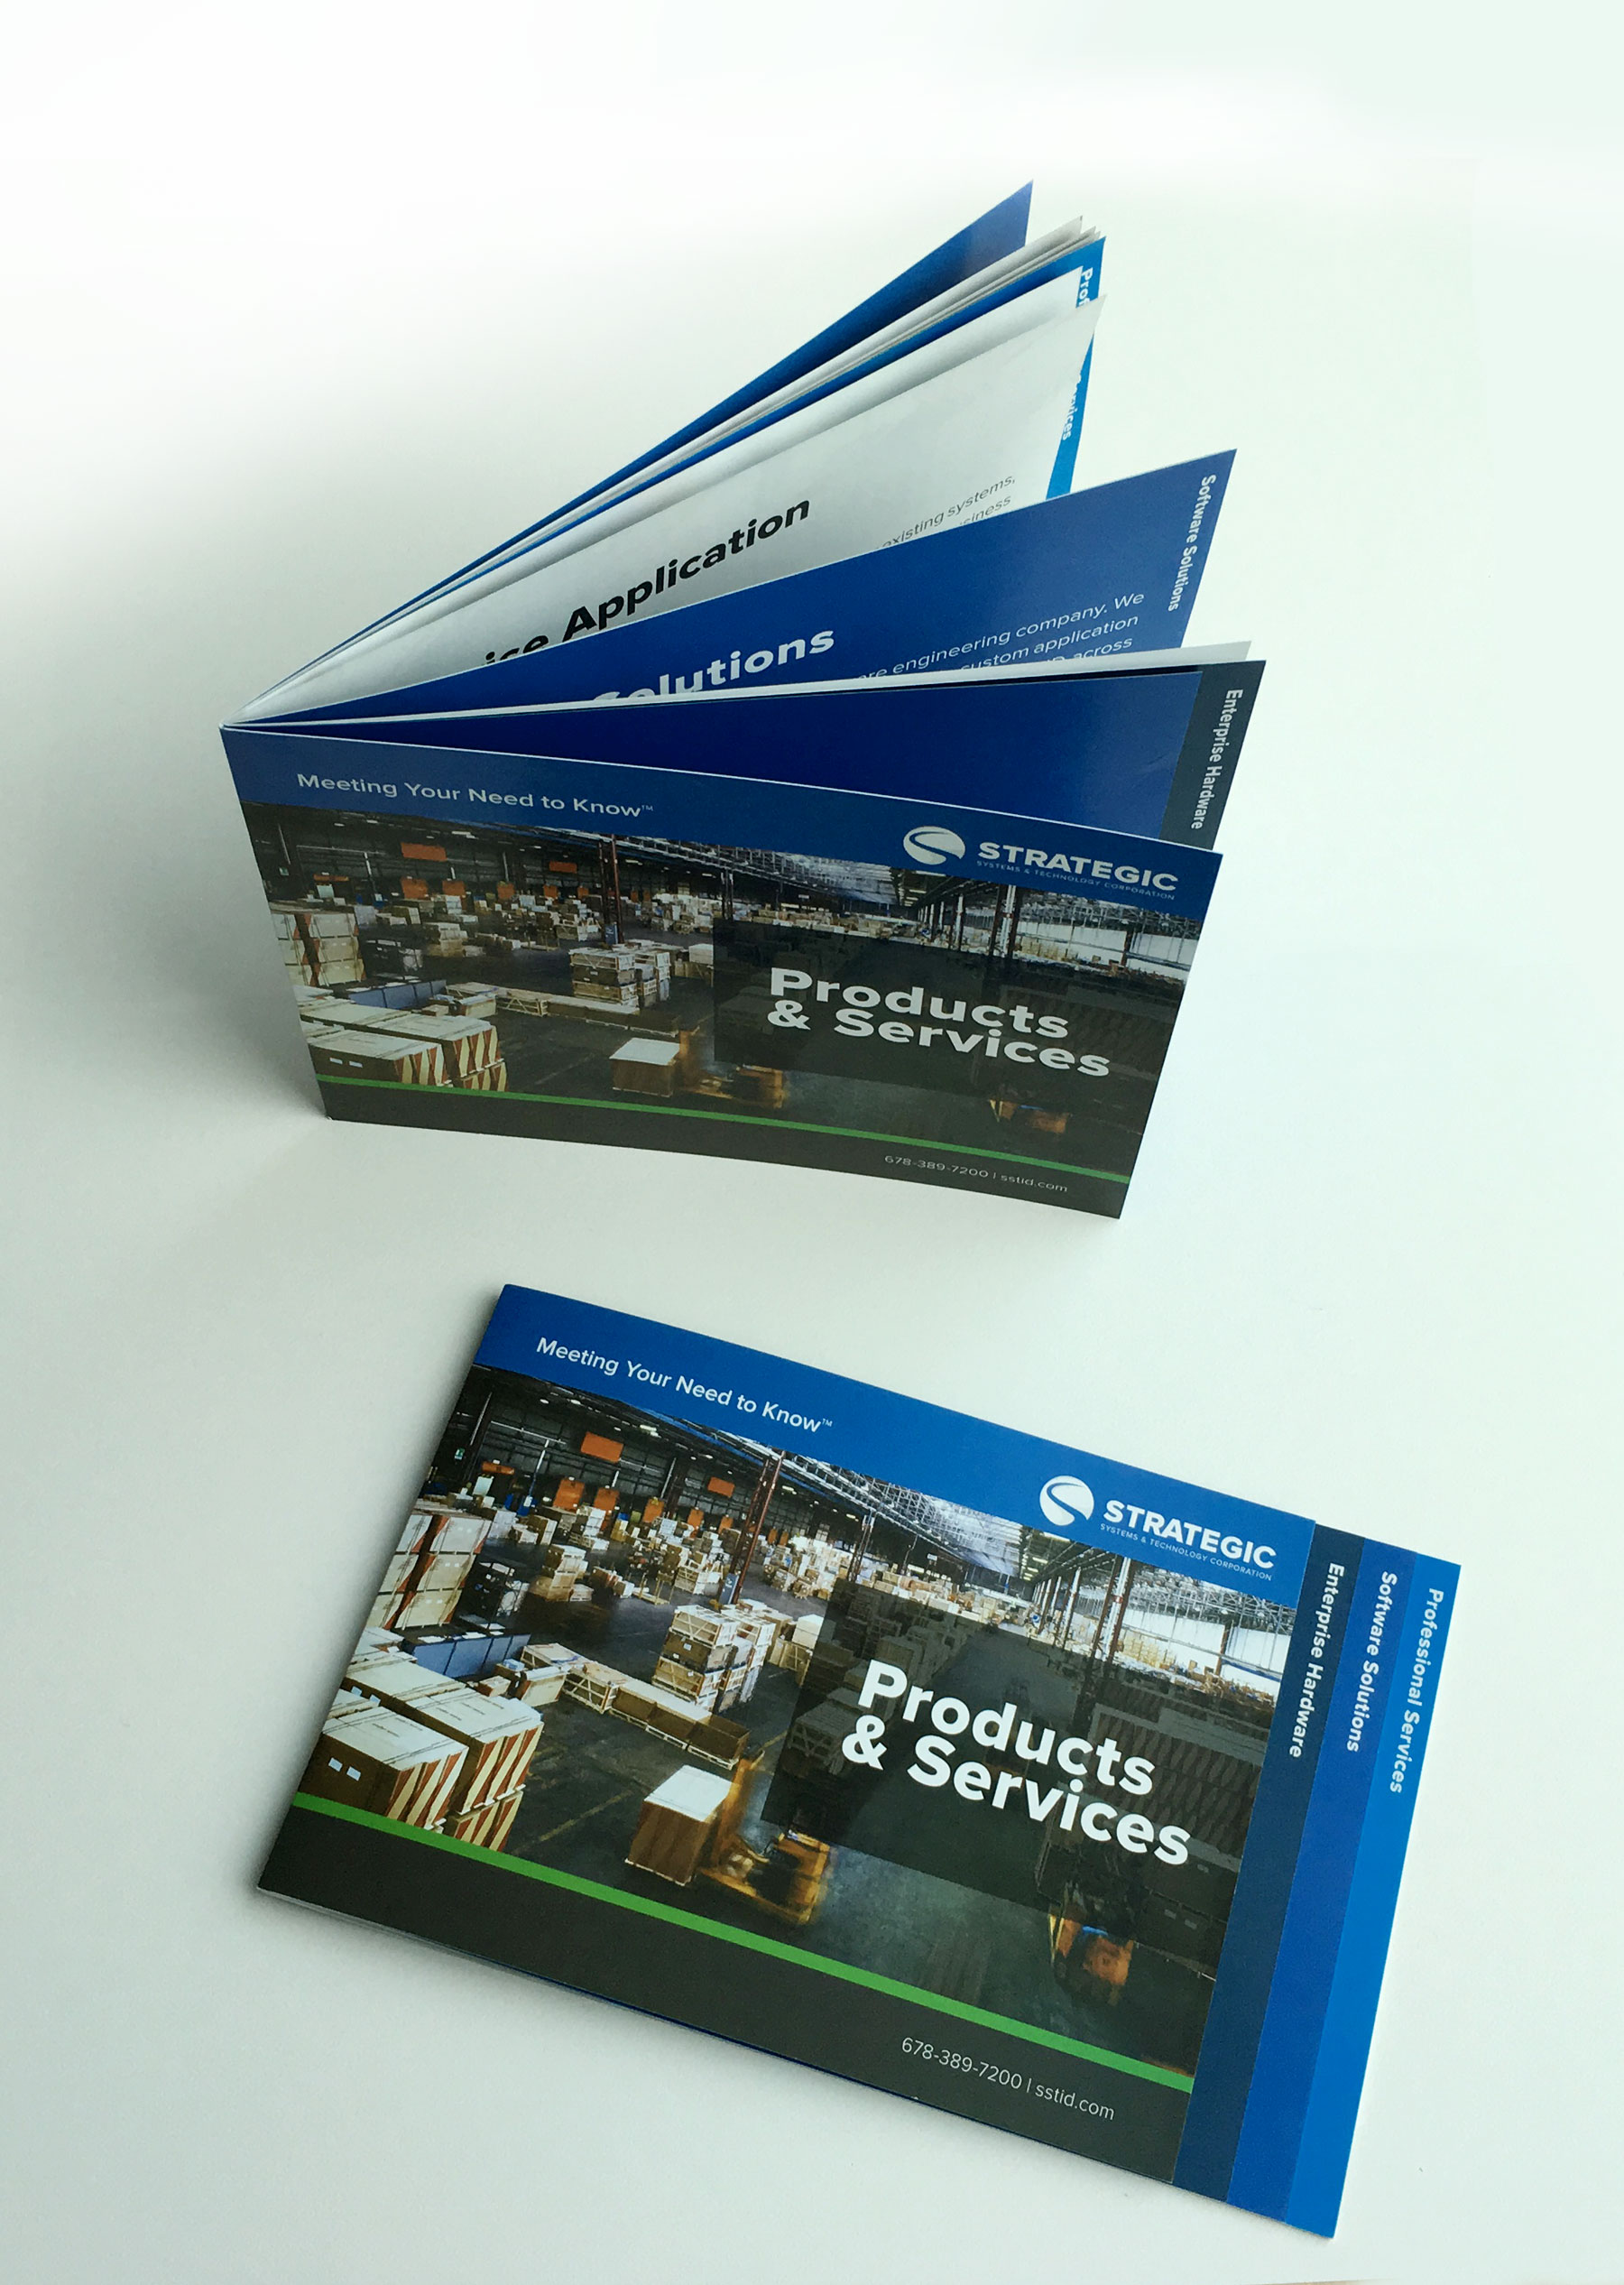 Strategic Product and Services Brochure.